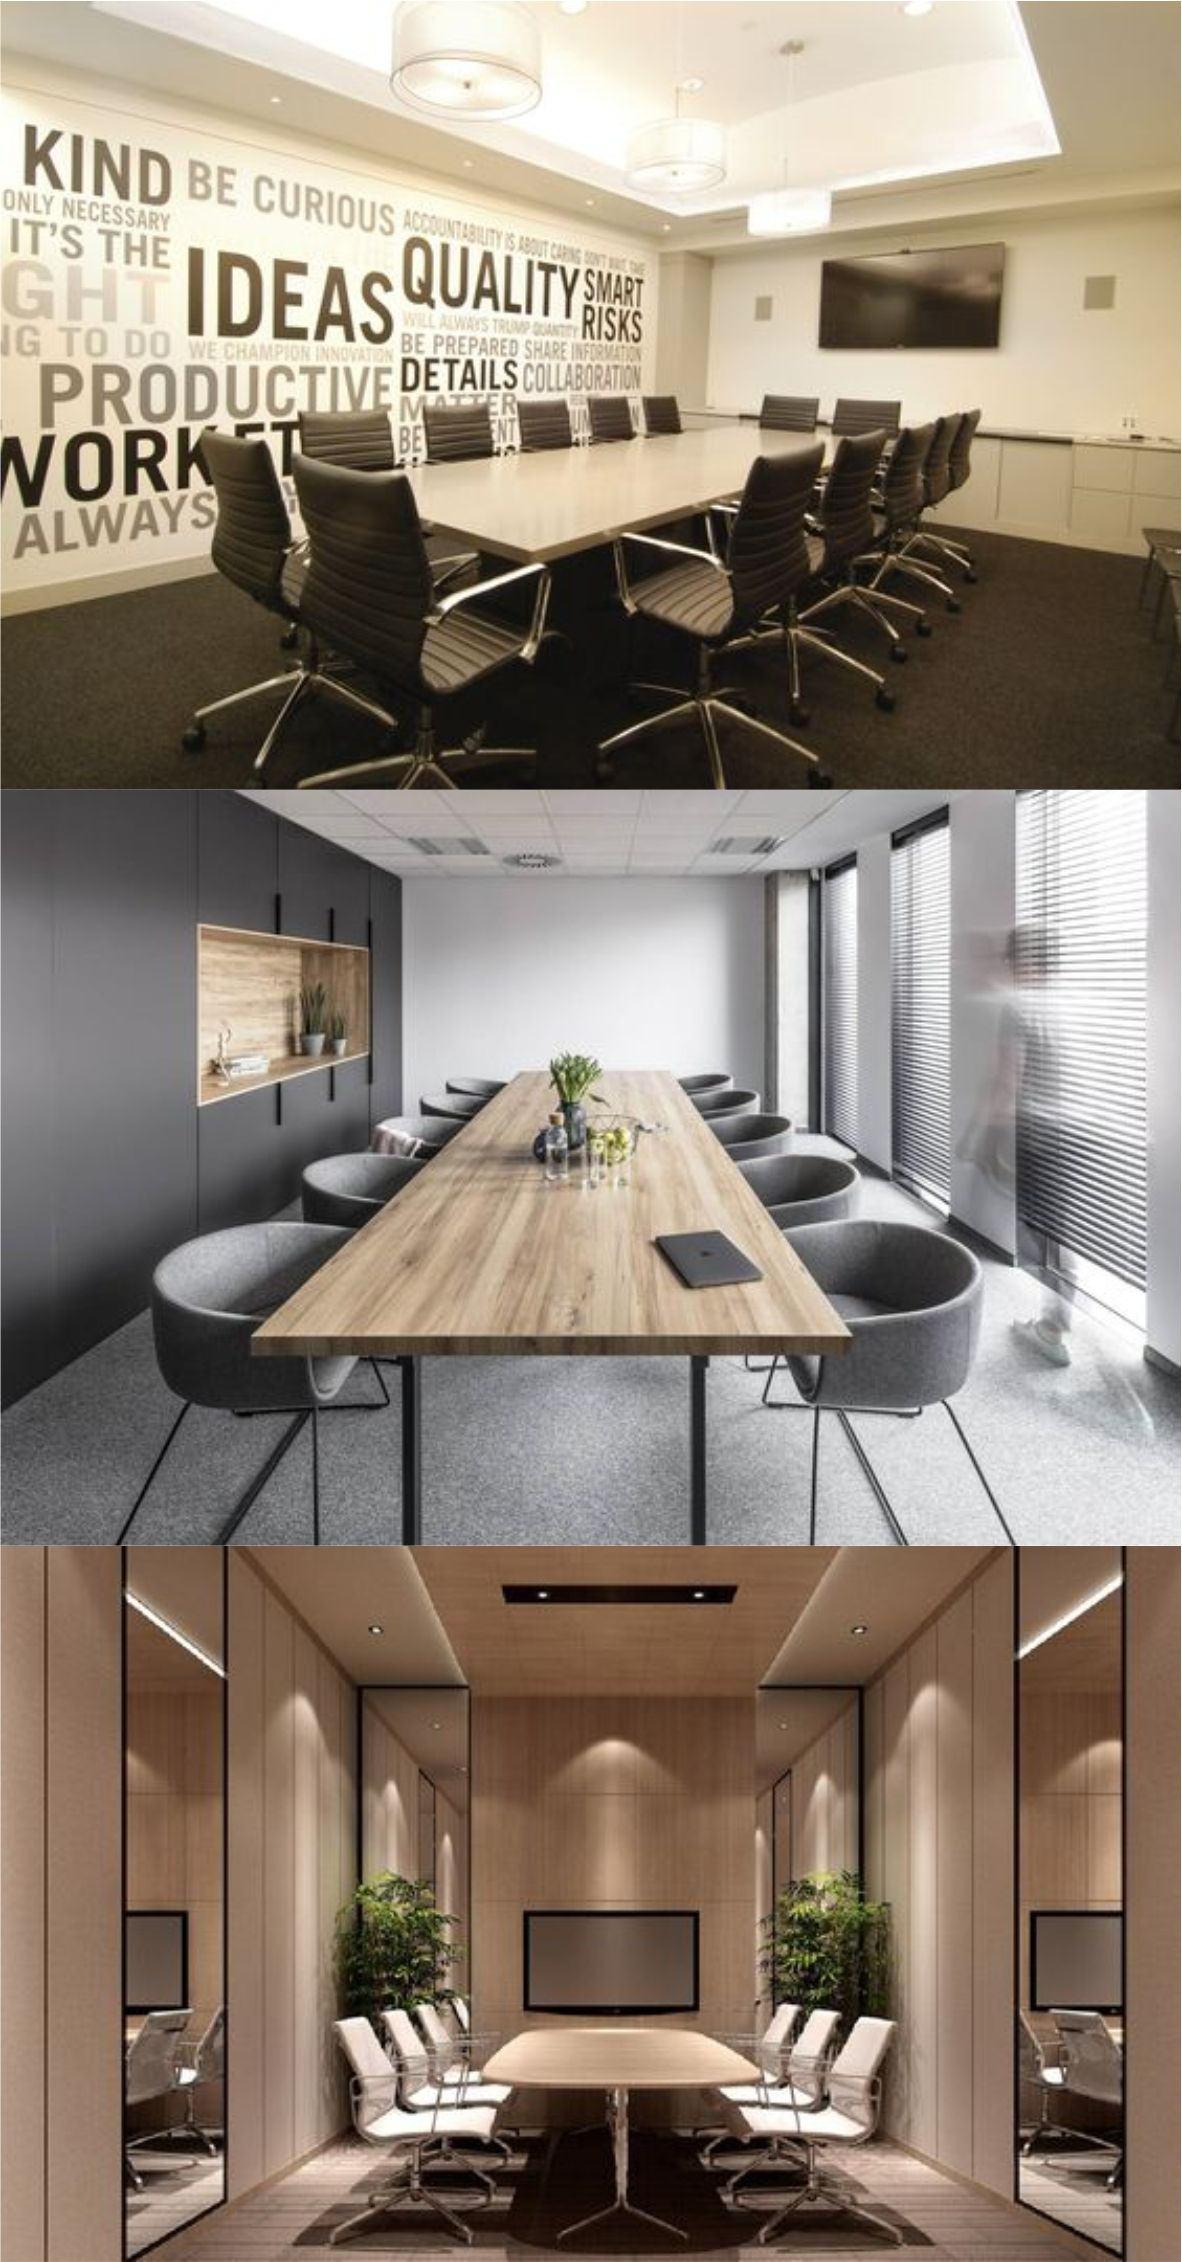 8 Tips for Designing a Conference Room That'll Wow Clients images